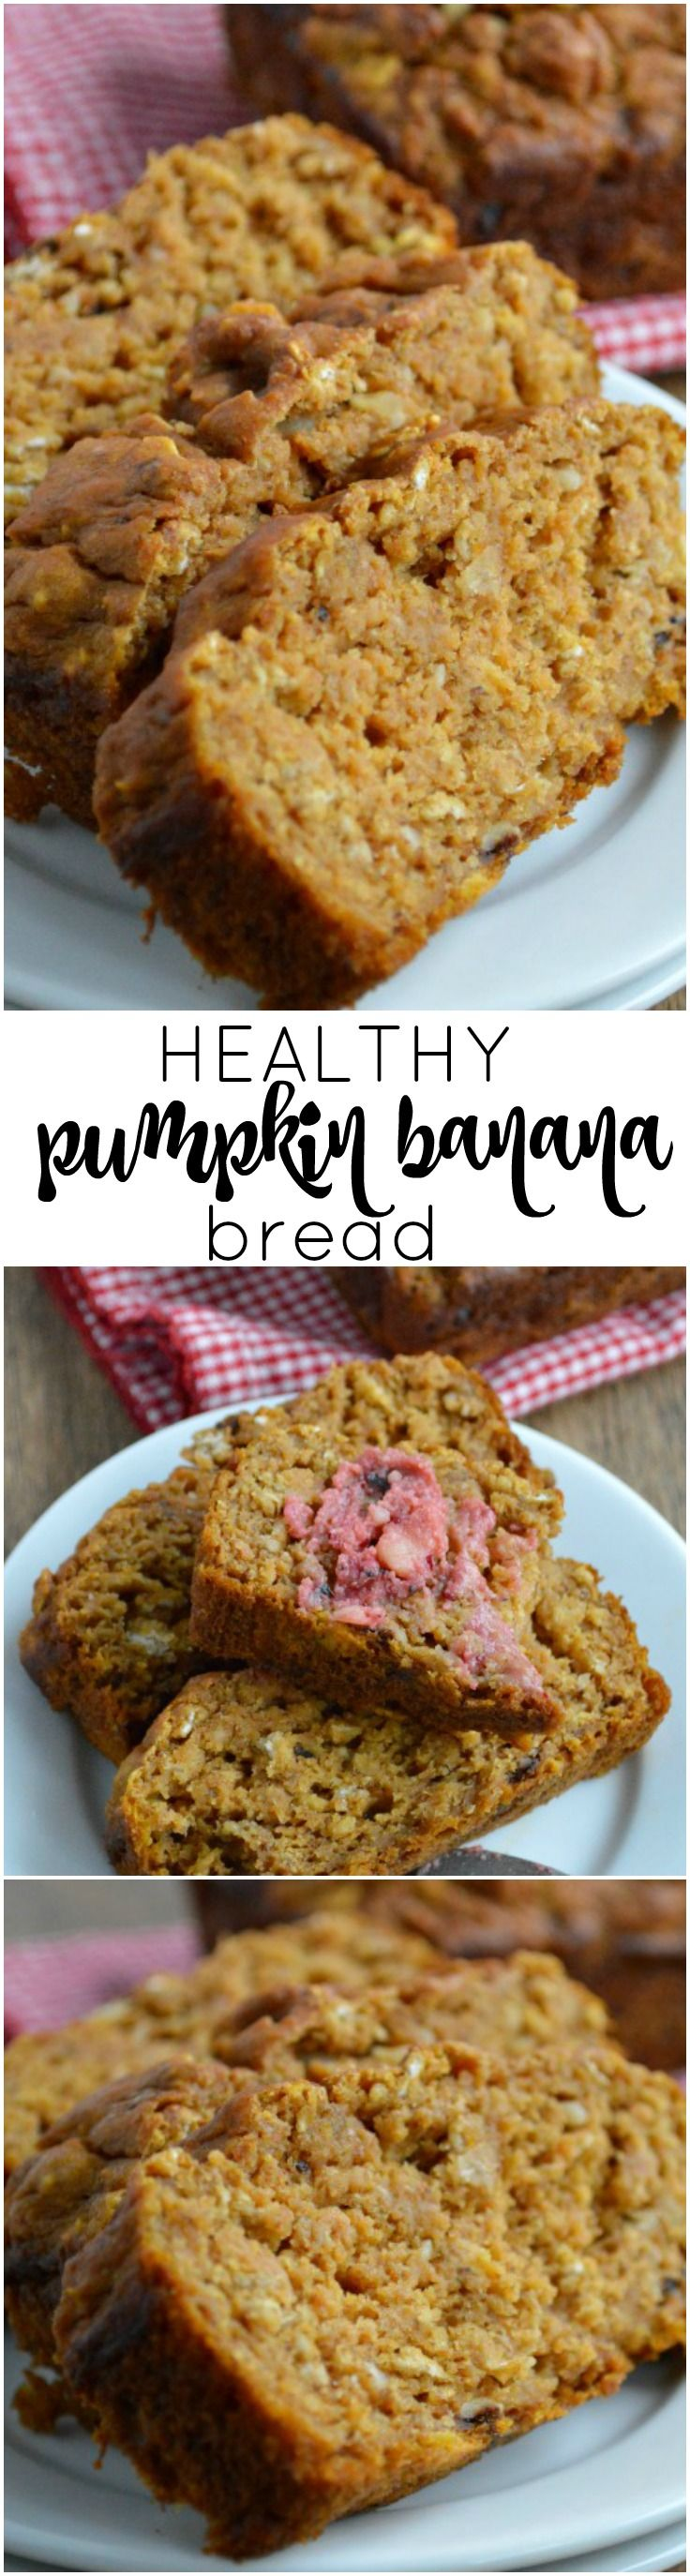 Moist quick bread with a tender crumb that's packed full of fruit and flavor. Healthy Pumpkin Banana Bread uses applesauce, bananas, and pumpkin in place of butter and has only 1/2 cup brown sugar in the whole recipe!